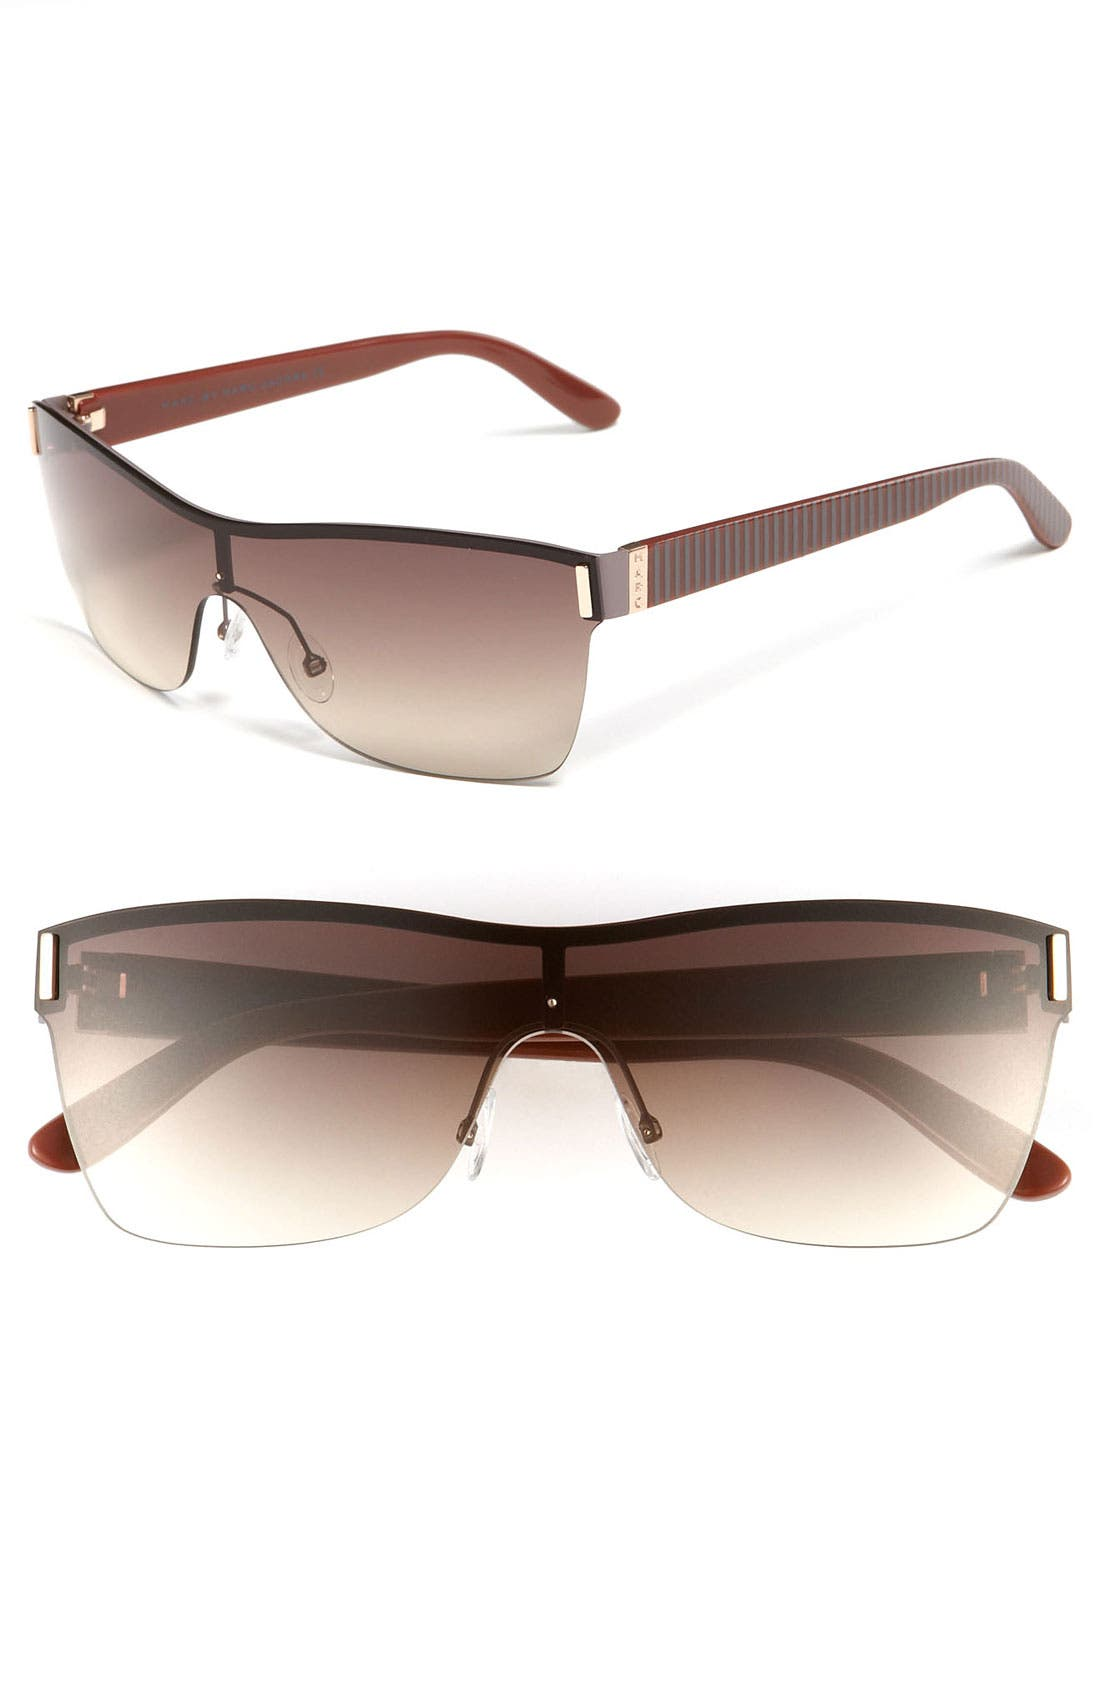 Main Image - MARC BY MARC JACOBS Rimless Shield Sunglasses